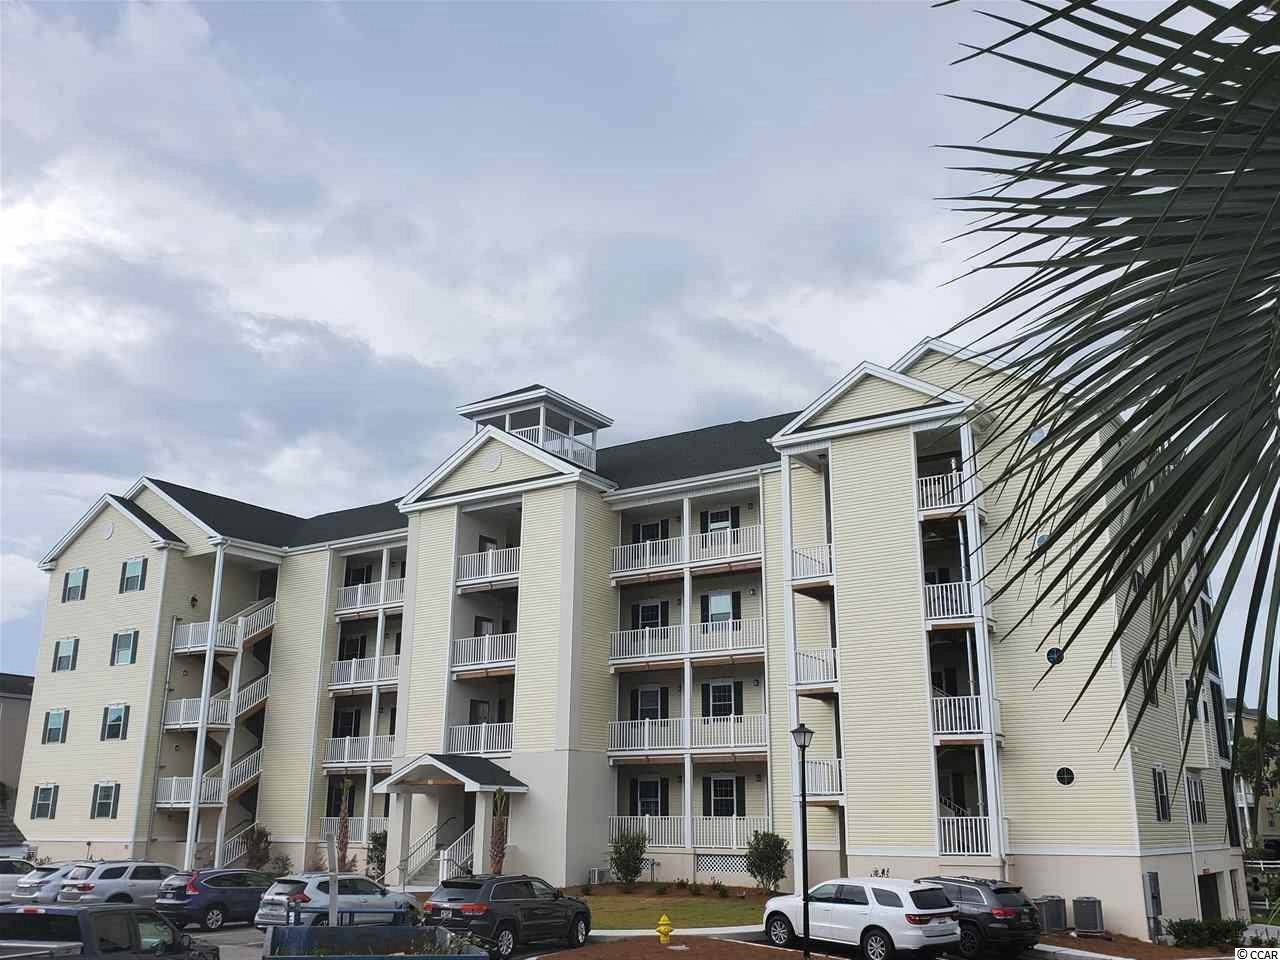 """Pre-Construction - Building #25.  Don't miss your chance to """"go coastal"""" and own a villa in the last condo building site in desirable Ocean Keyes.  Condo Building is closest to the beach with a beautiful view overlooking a pond with fountain.   - Sea Star Floor Plan (3BR/2BA) 1351 Heated SF   Choose your colors and options from many selections and upgrades.  Your villa will convey with one assigned reserved parking space under the building and a detached storage closet.  Golf cart spaces are available to for the first 18 buyers - 13 secured and 5 unsecured.  Large 3,500 lb. elevator.  Notable features include Vinyl Plank flooring throughout standard, one accessible roll-in shower, granite countertops in kitchen, GE kitchen appliances, birch cabinets, walk-in closet in Master Bedroom, and a spacious rear porch off the living area.   Ocean Keyes is an exclusive gated community located within walking distance of the beach in the Ocean Drive section of North Myrtle Beach.  Beautifully landscaped with trees, lakes and ponds with fountains. Amenities include 6-50 ft swimming pools with hot tubs and sun decks, 4-kiddie pools, 2-tennis courts, fitness facility, clubhouses, and barbecue areas with picnic tables and grills. Only 2 blocks from Main Street for enjoyment of restaurants, shopping and entertainment and easy access to all areas of the Grand Strand.   All measurements and square footage are approximate and not guaranteed. Buyer is responsible for verification."""